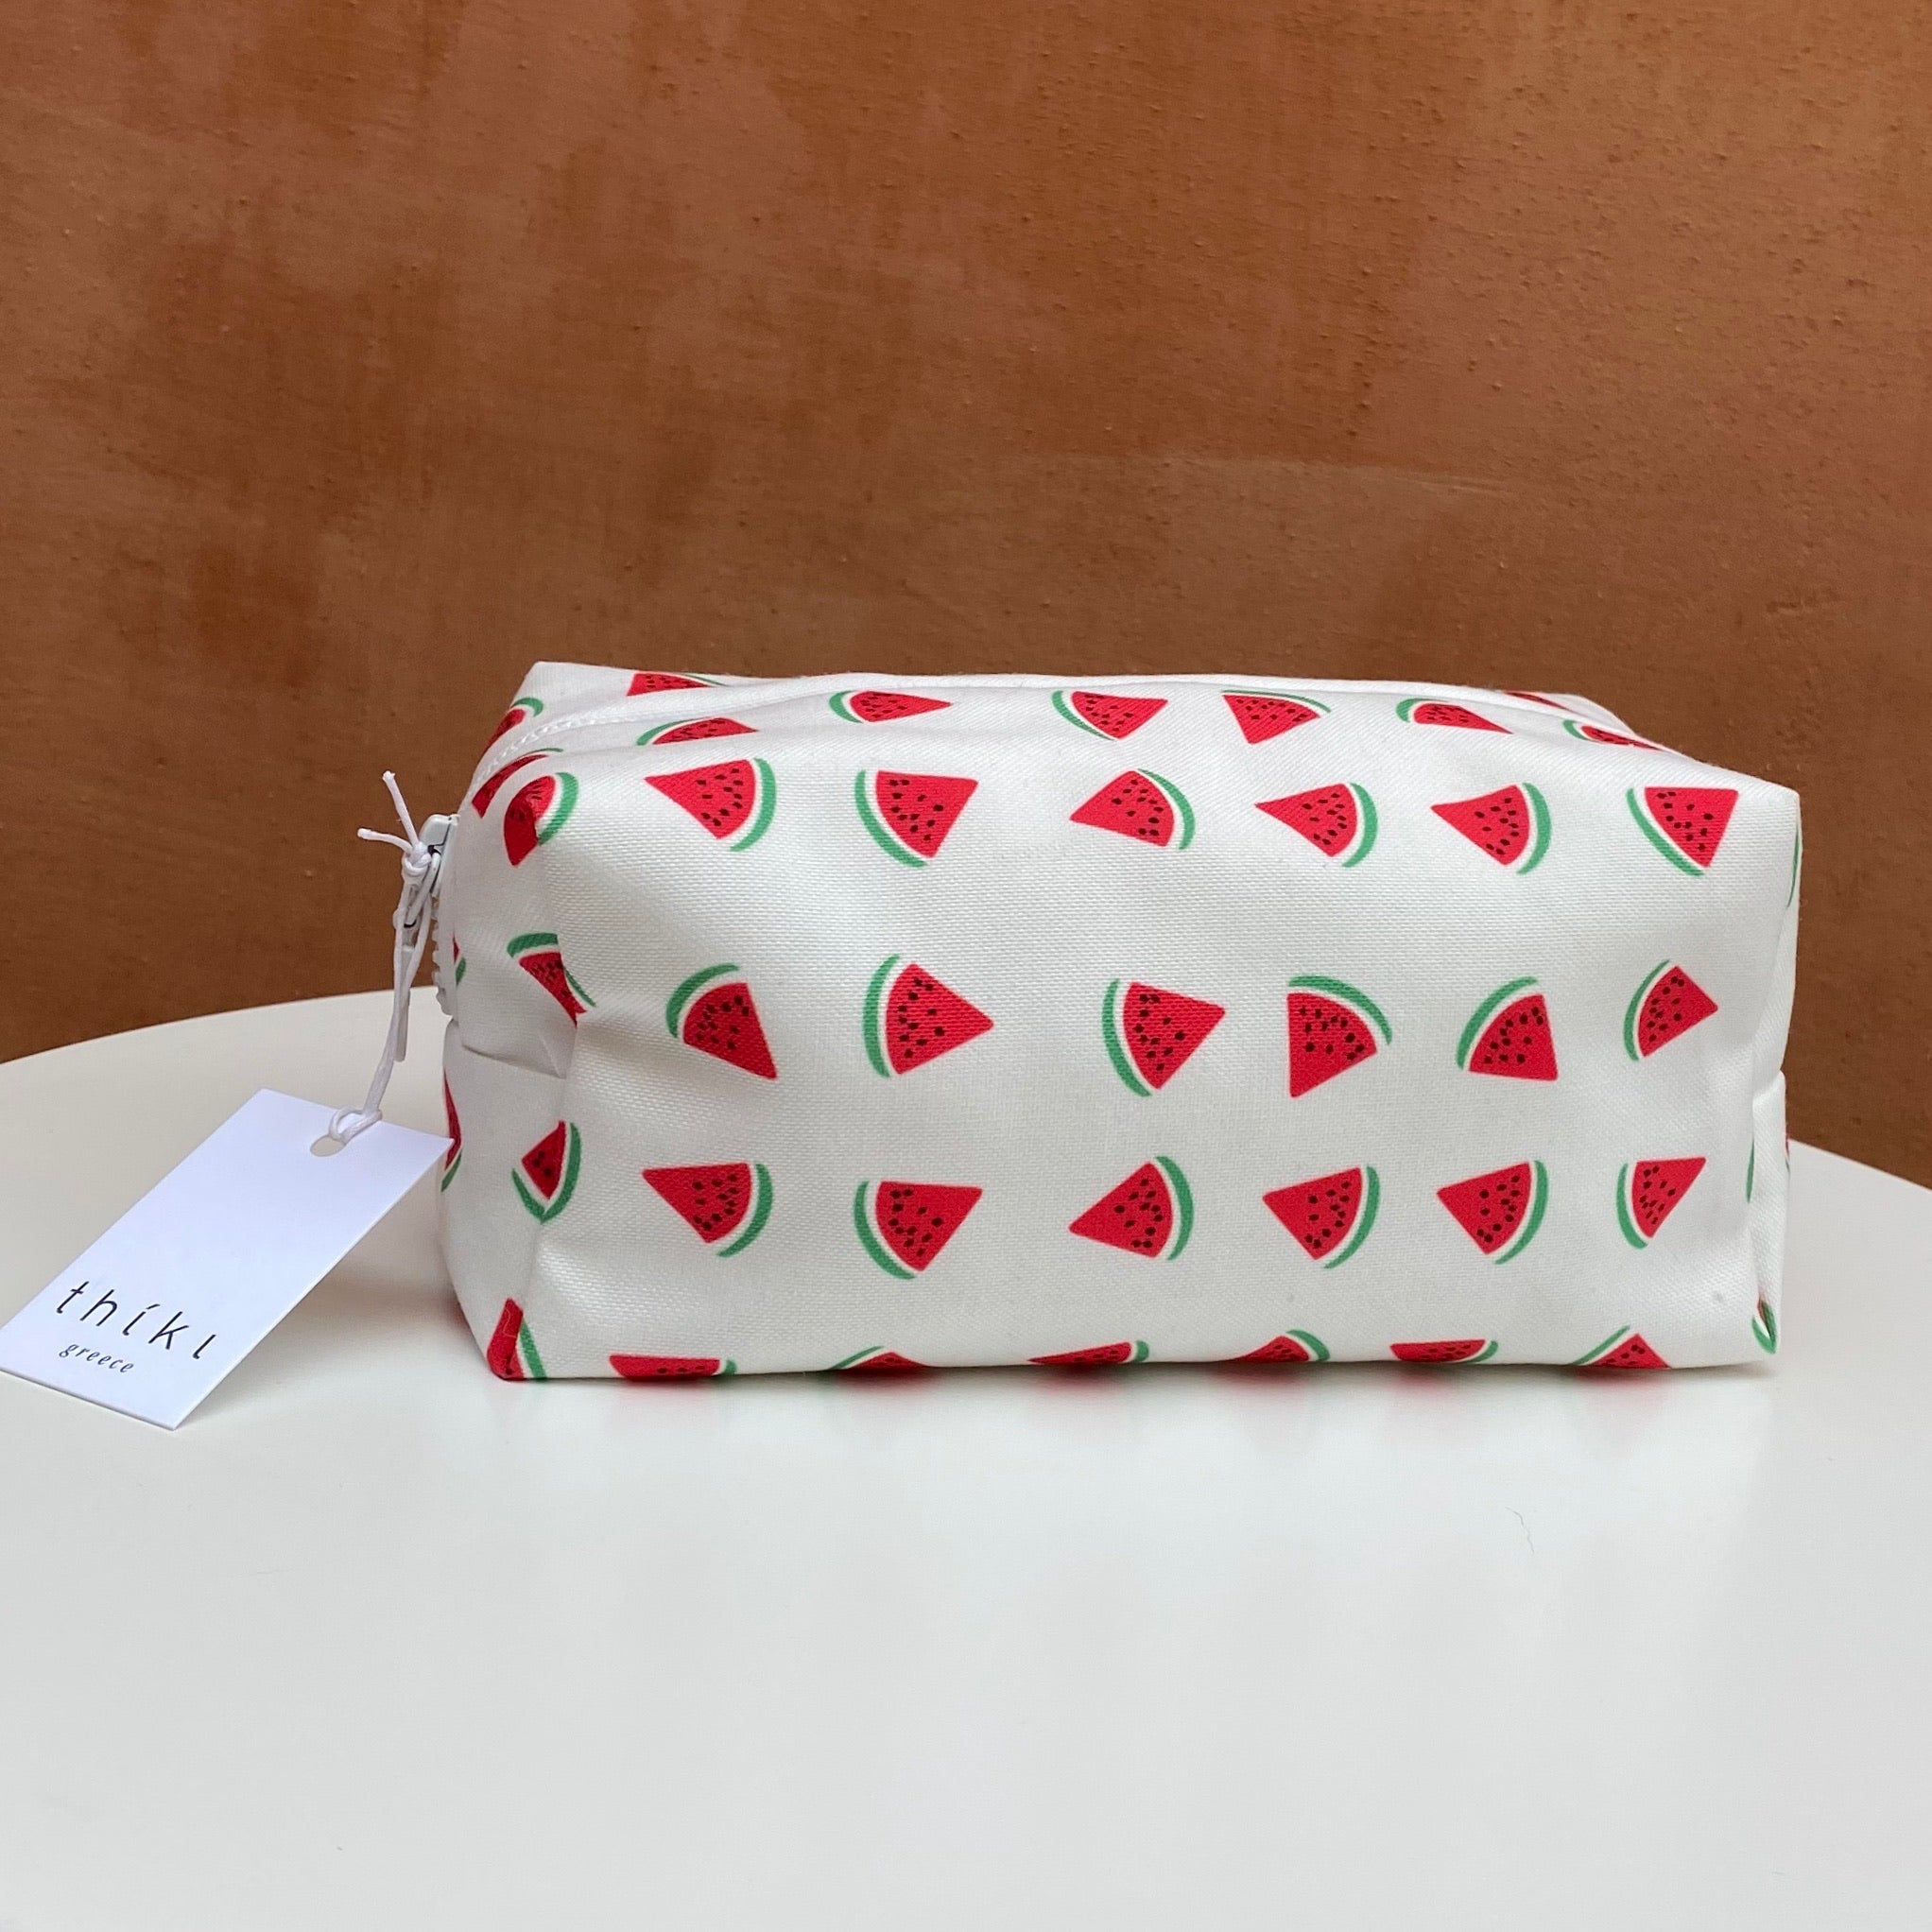 White watermelon box bag